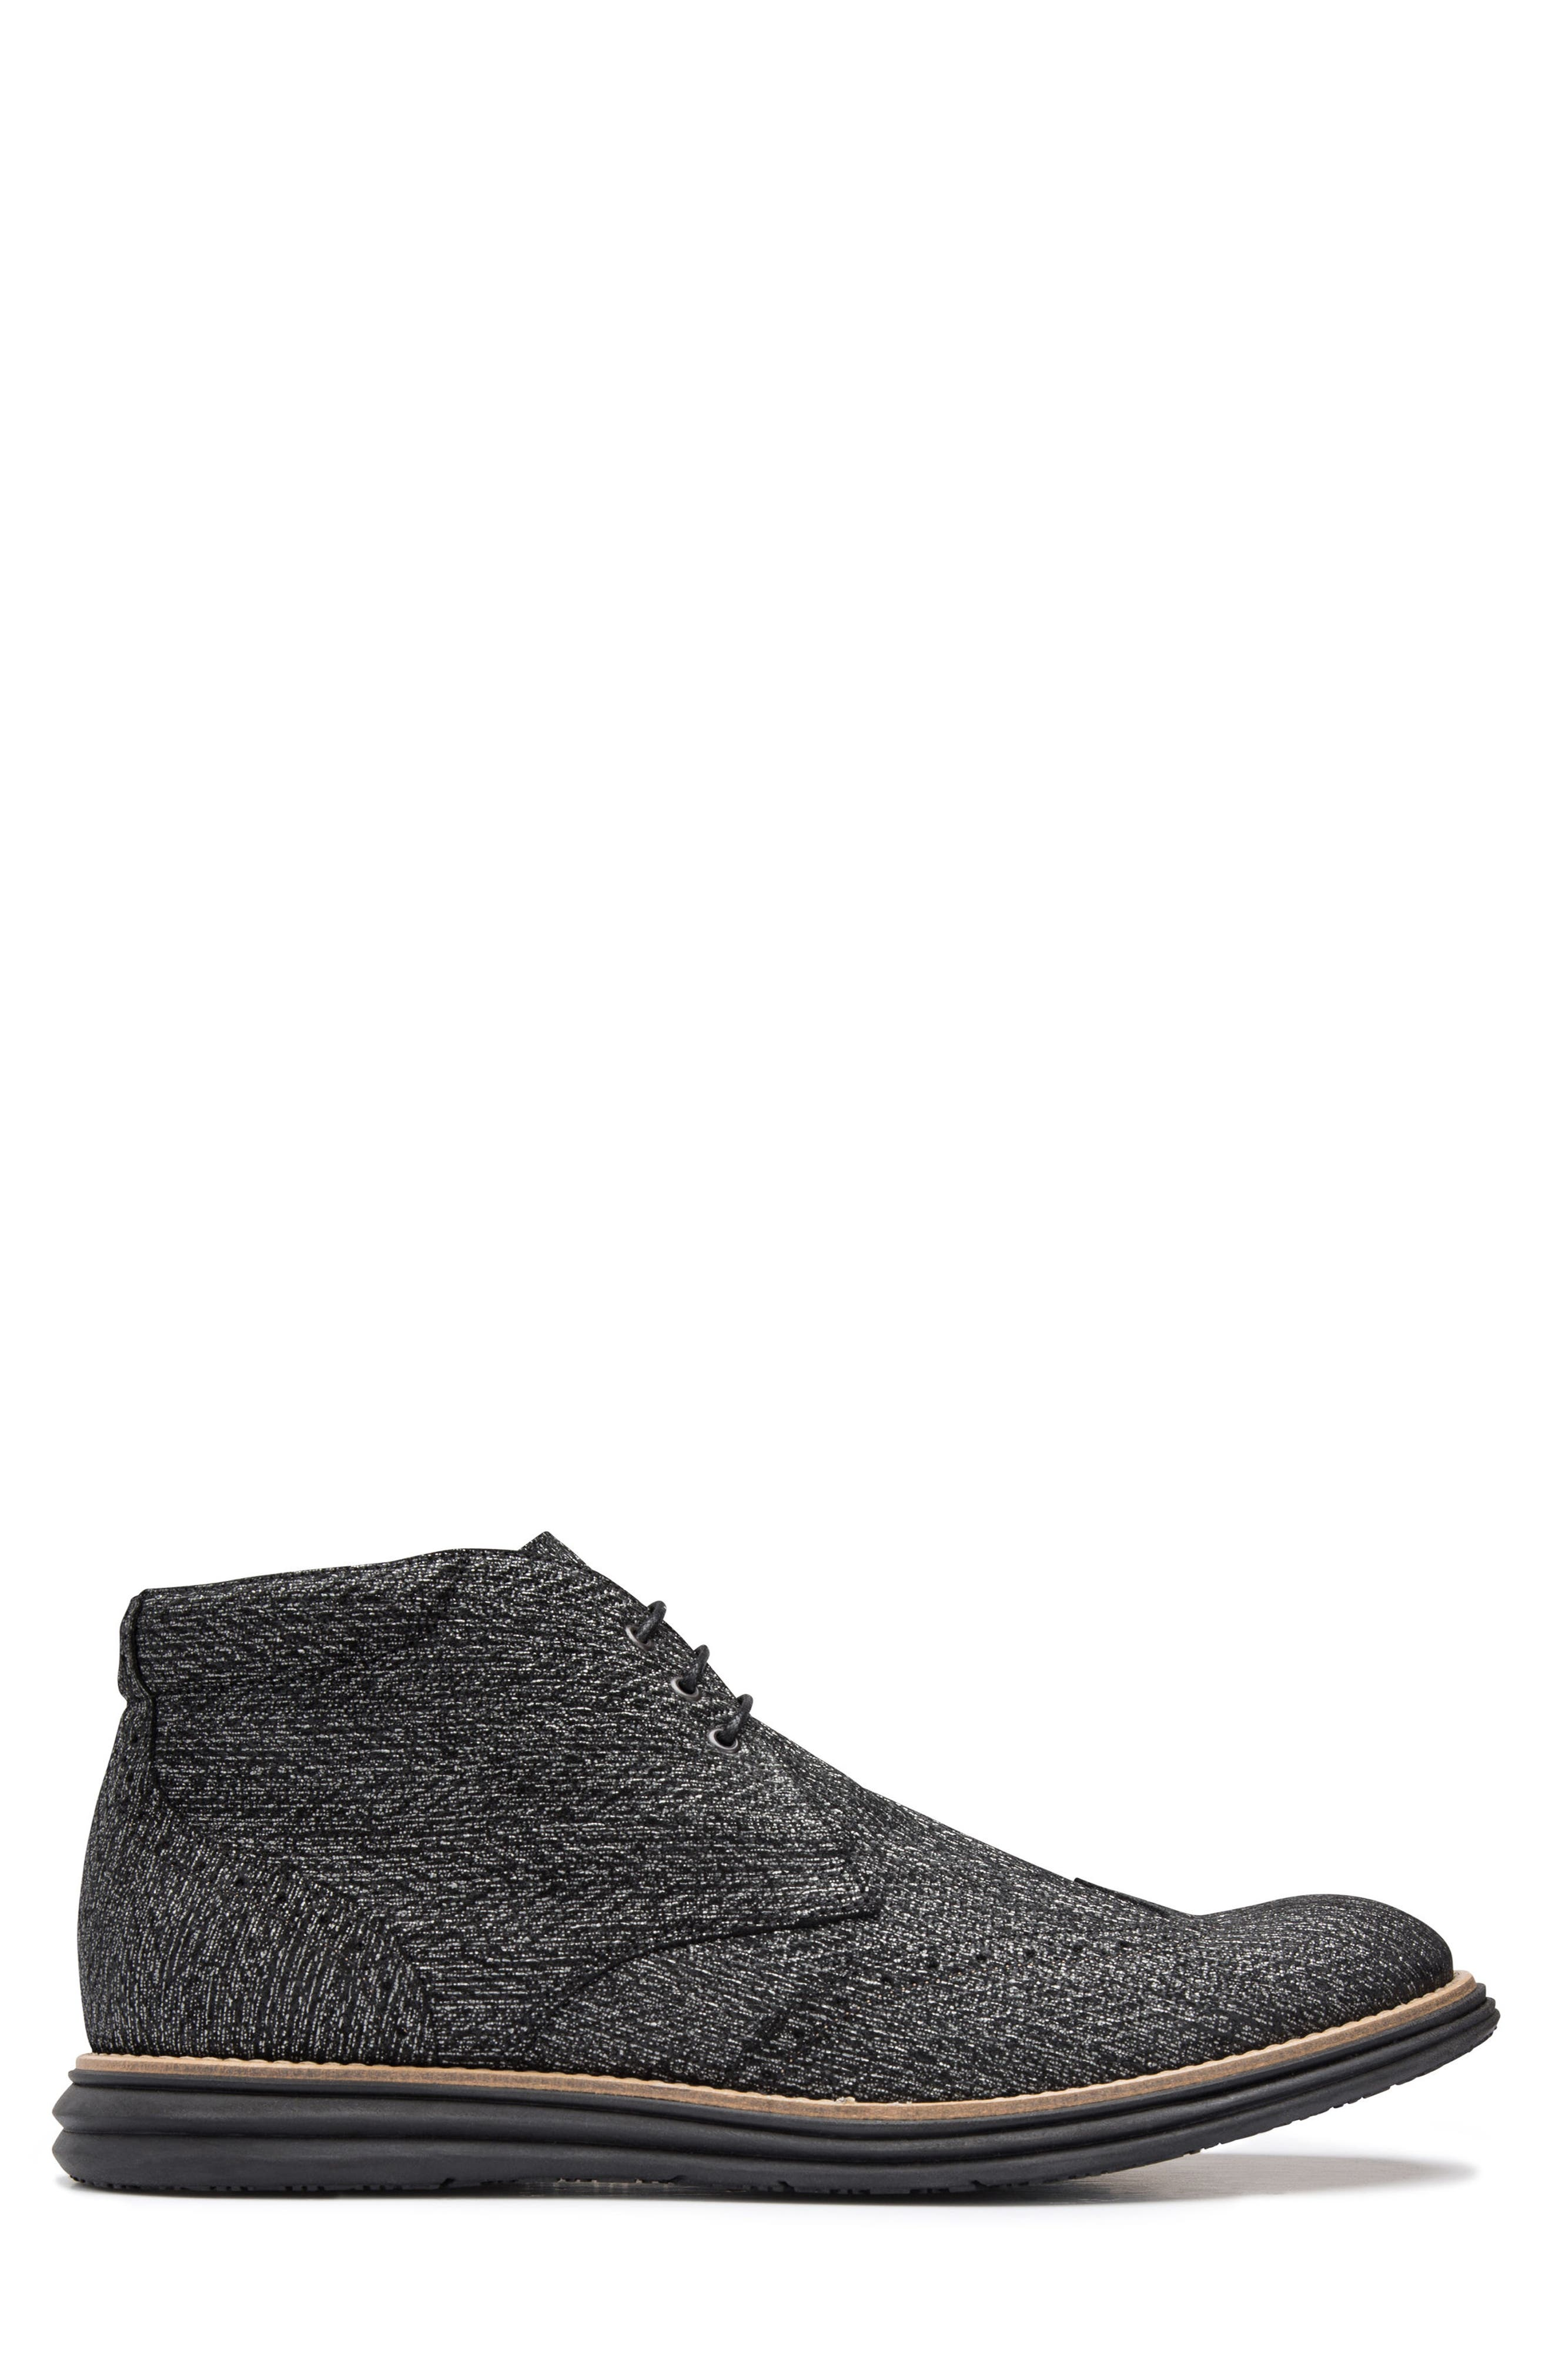 Textured Wingtip Chukka Boot,                             Alternate thumbnail 3, color,                             NERO